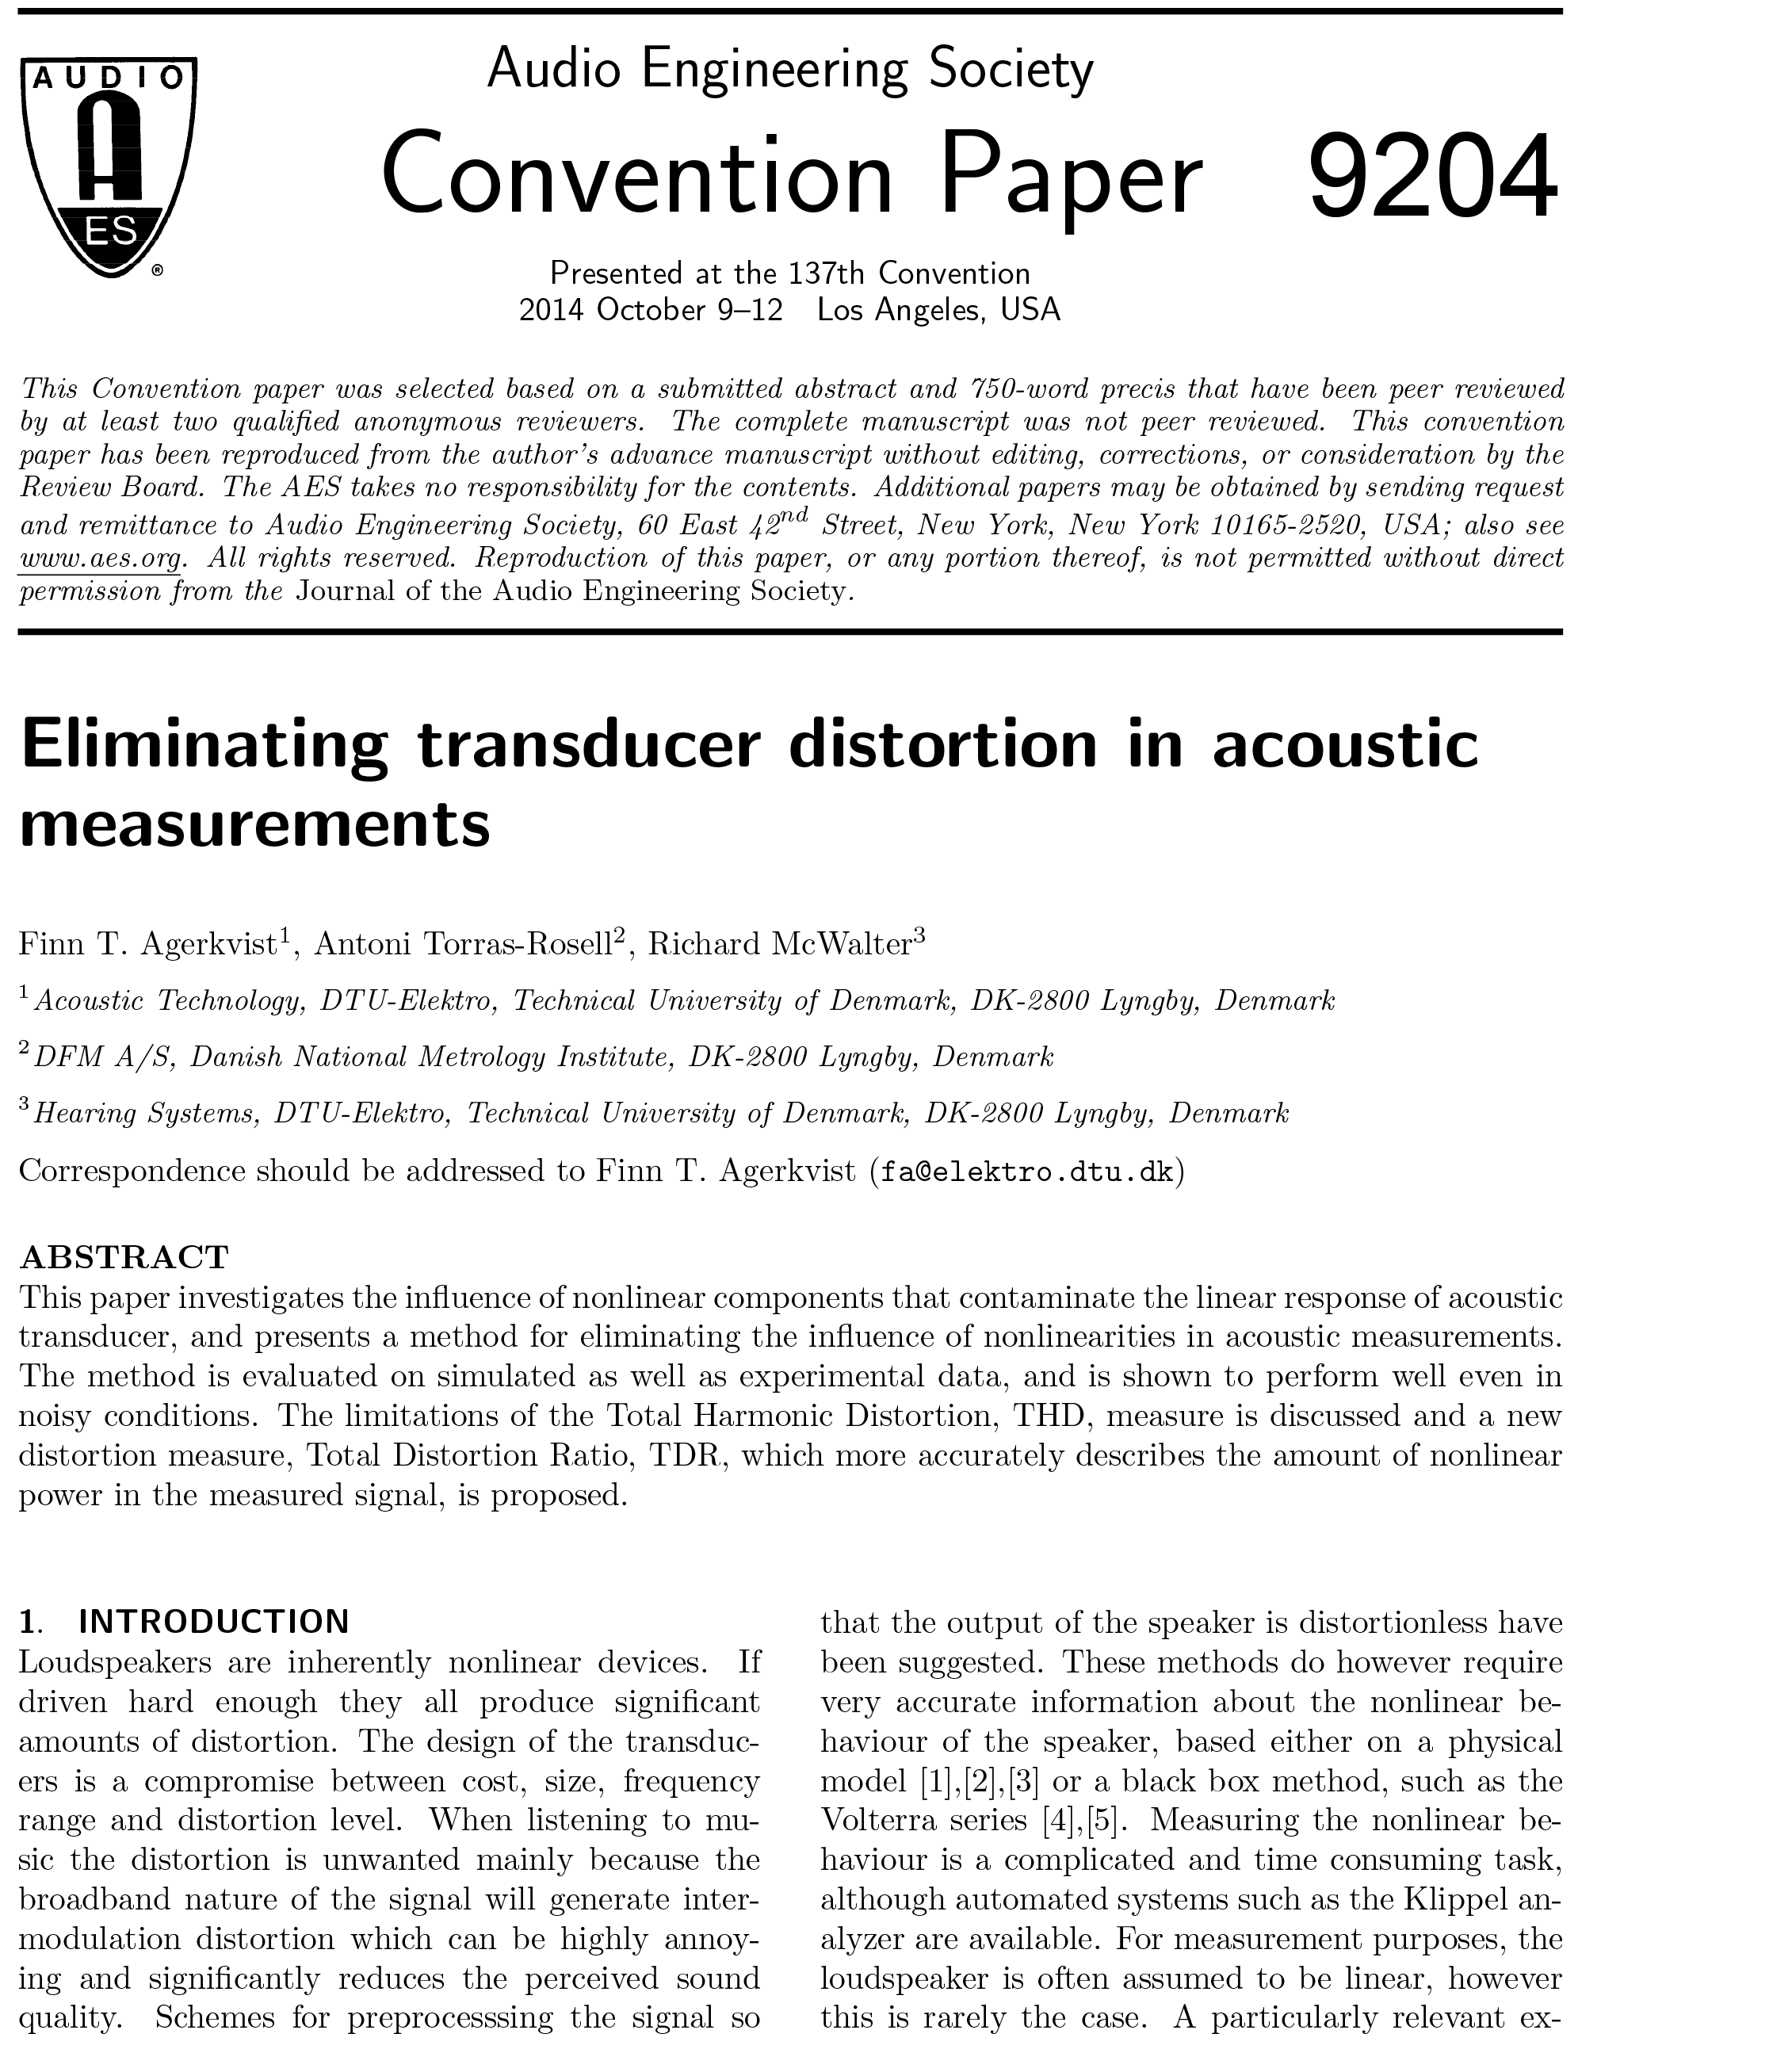 Aes e library eliminating transducer distortion in acoustic aes e library eliminating transducer distortion in acoustic measurements falaconquin